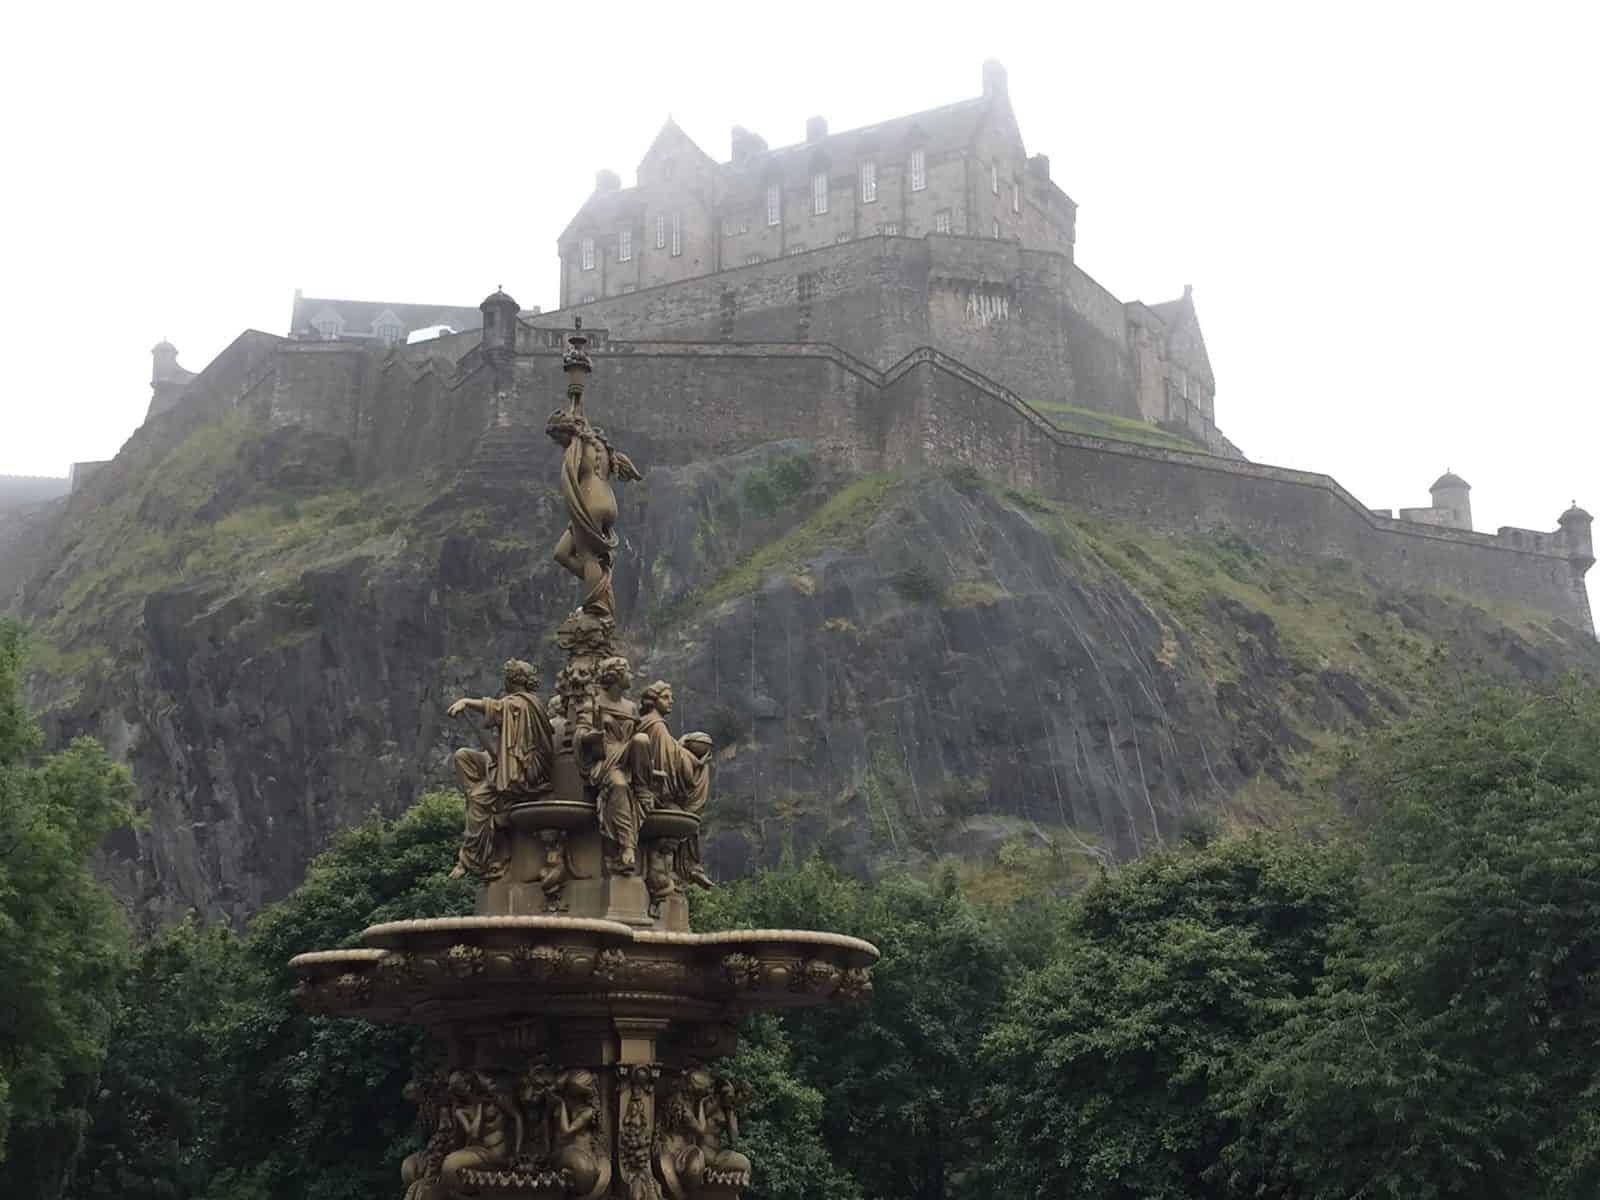 19 of the best places in Scotland - Edinburgh definitely has to be on any list